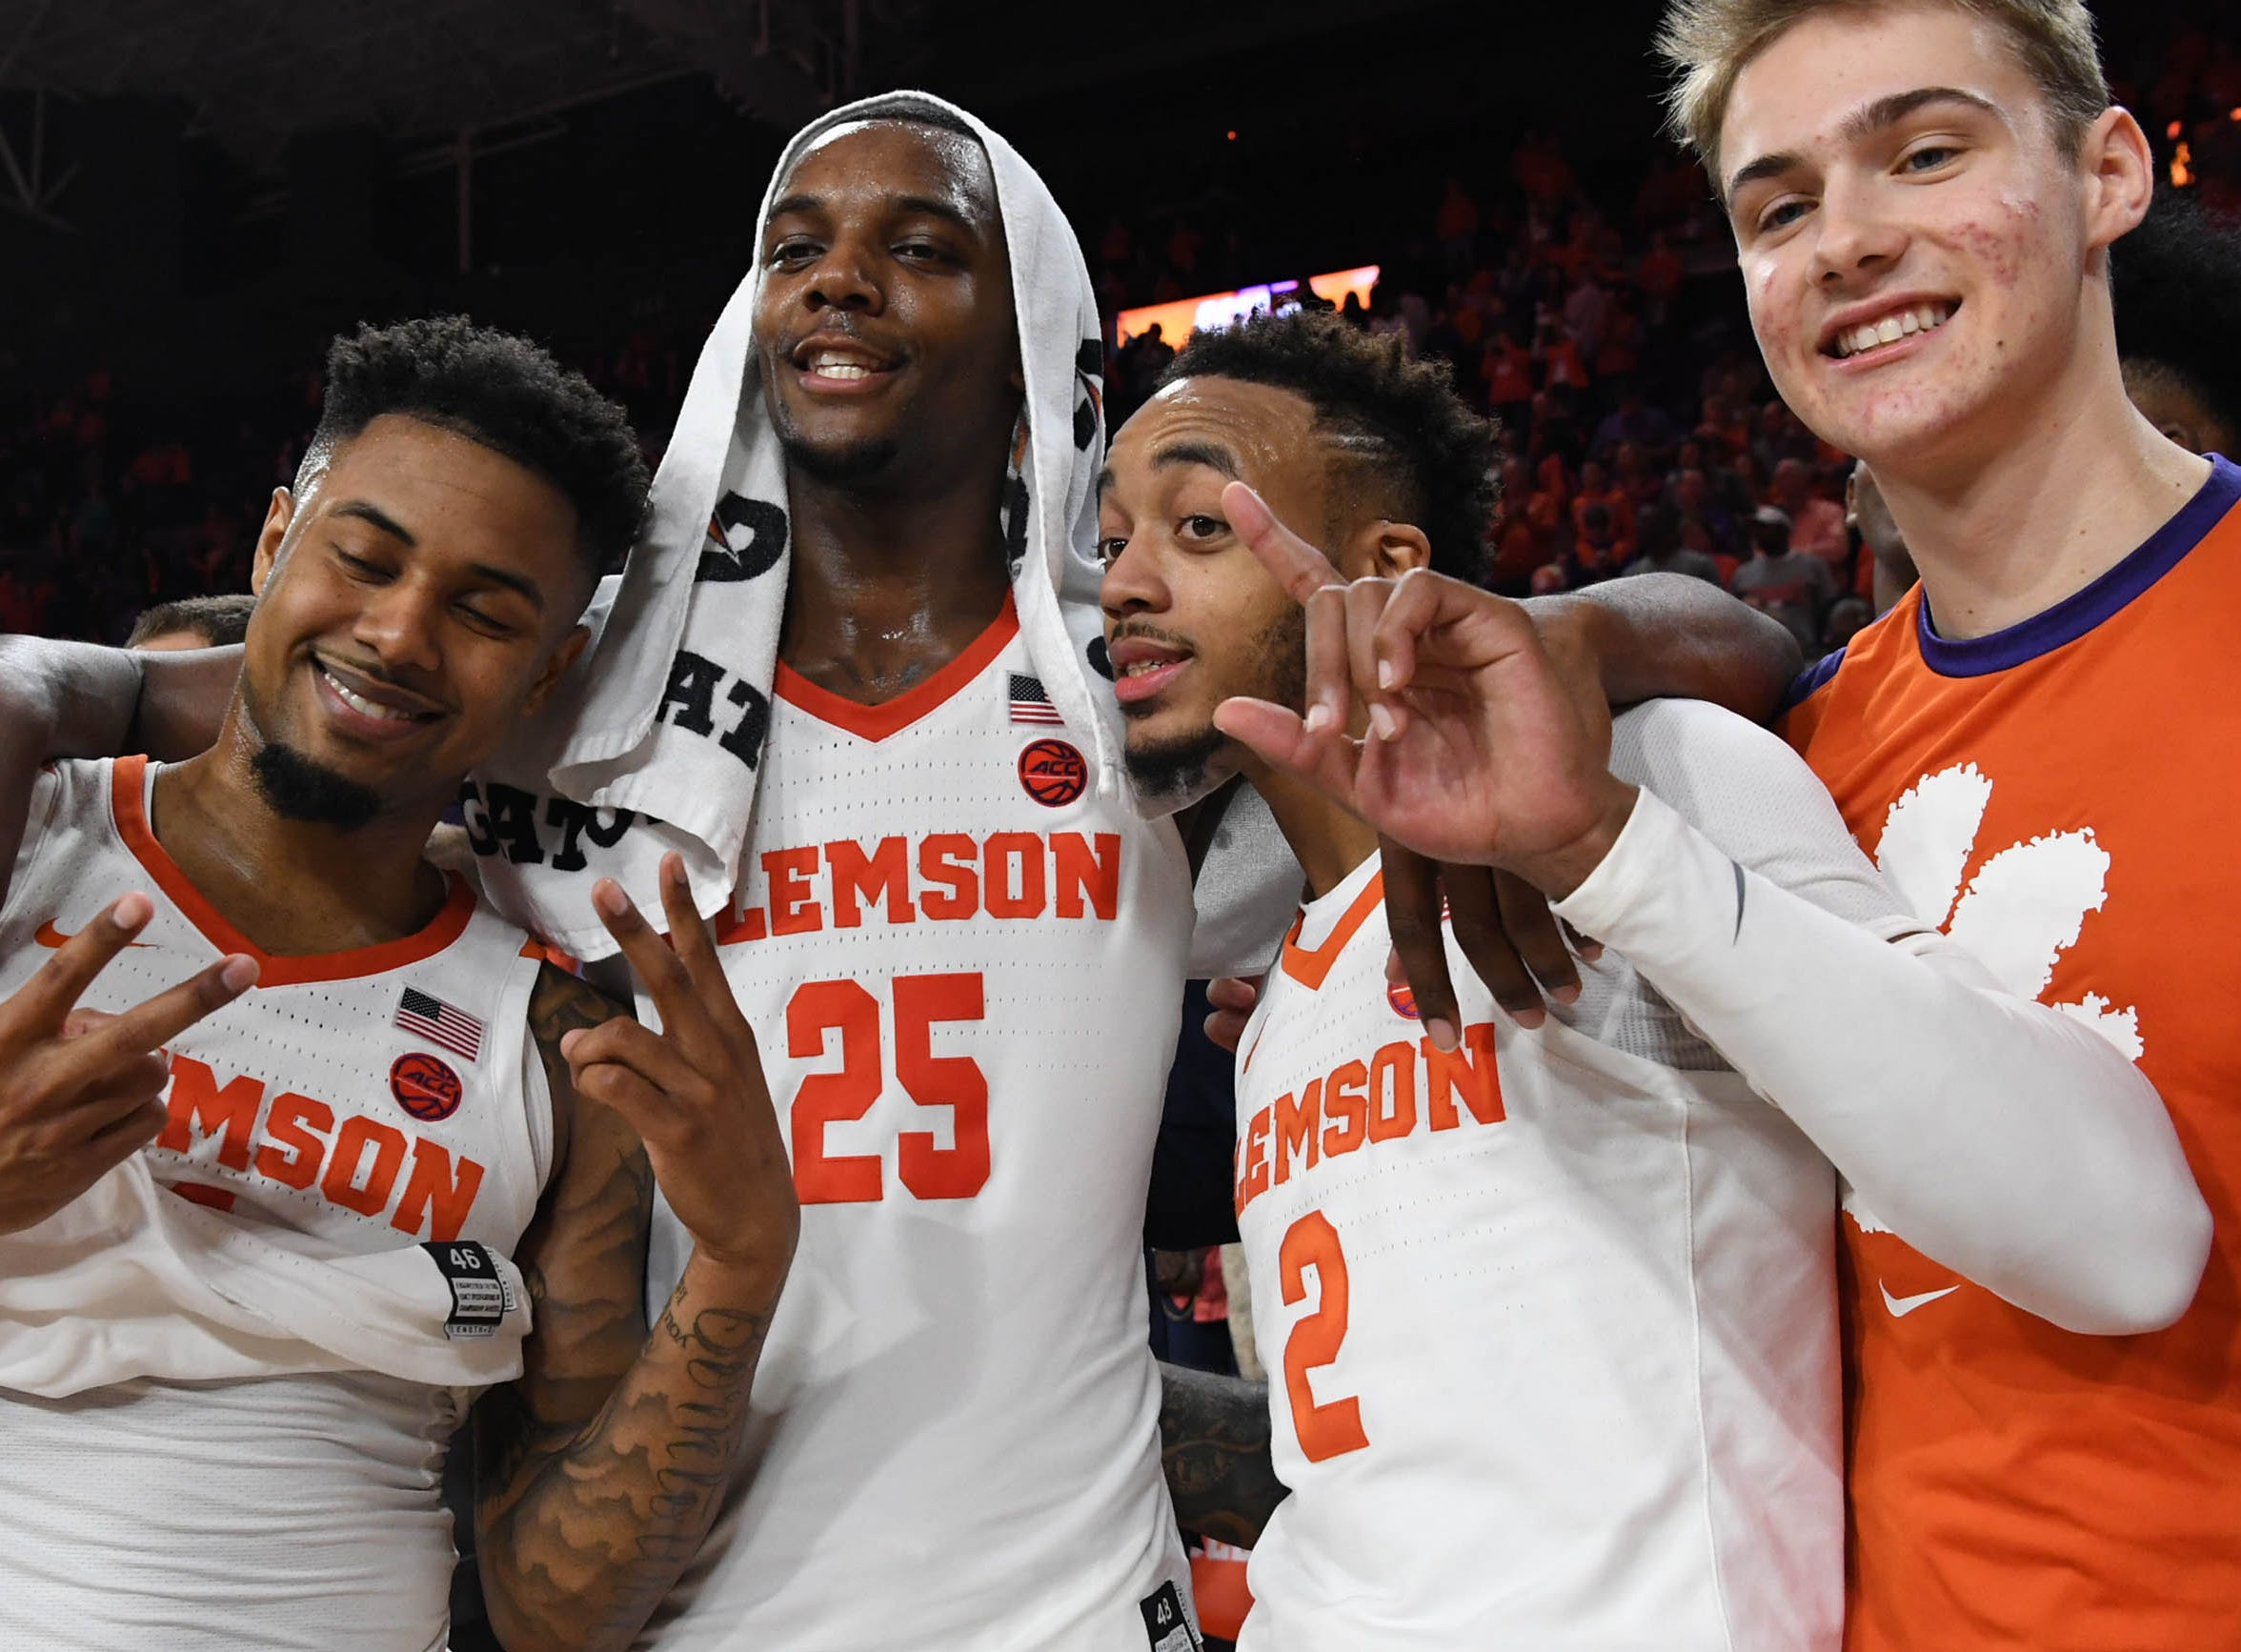 Clemson players Clemson guard Shelton Mitchell (4), forward Aamir Simms (25),guard Marcquise Reed (2), and forward Hunter Tyson(5) after a 67-55 win over Syracuse in Littlejohn Coliseum in Clemson Saturday, March 9, 2019.